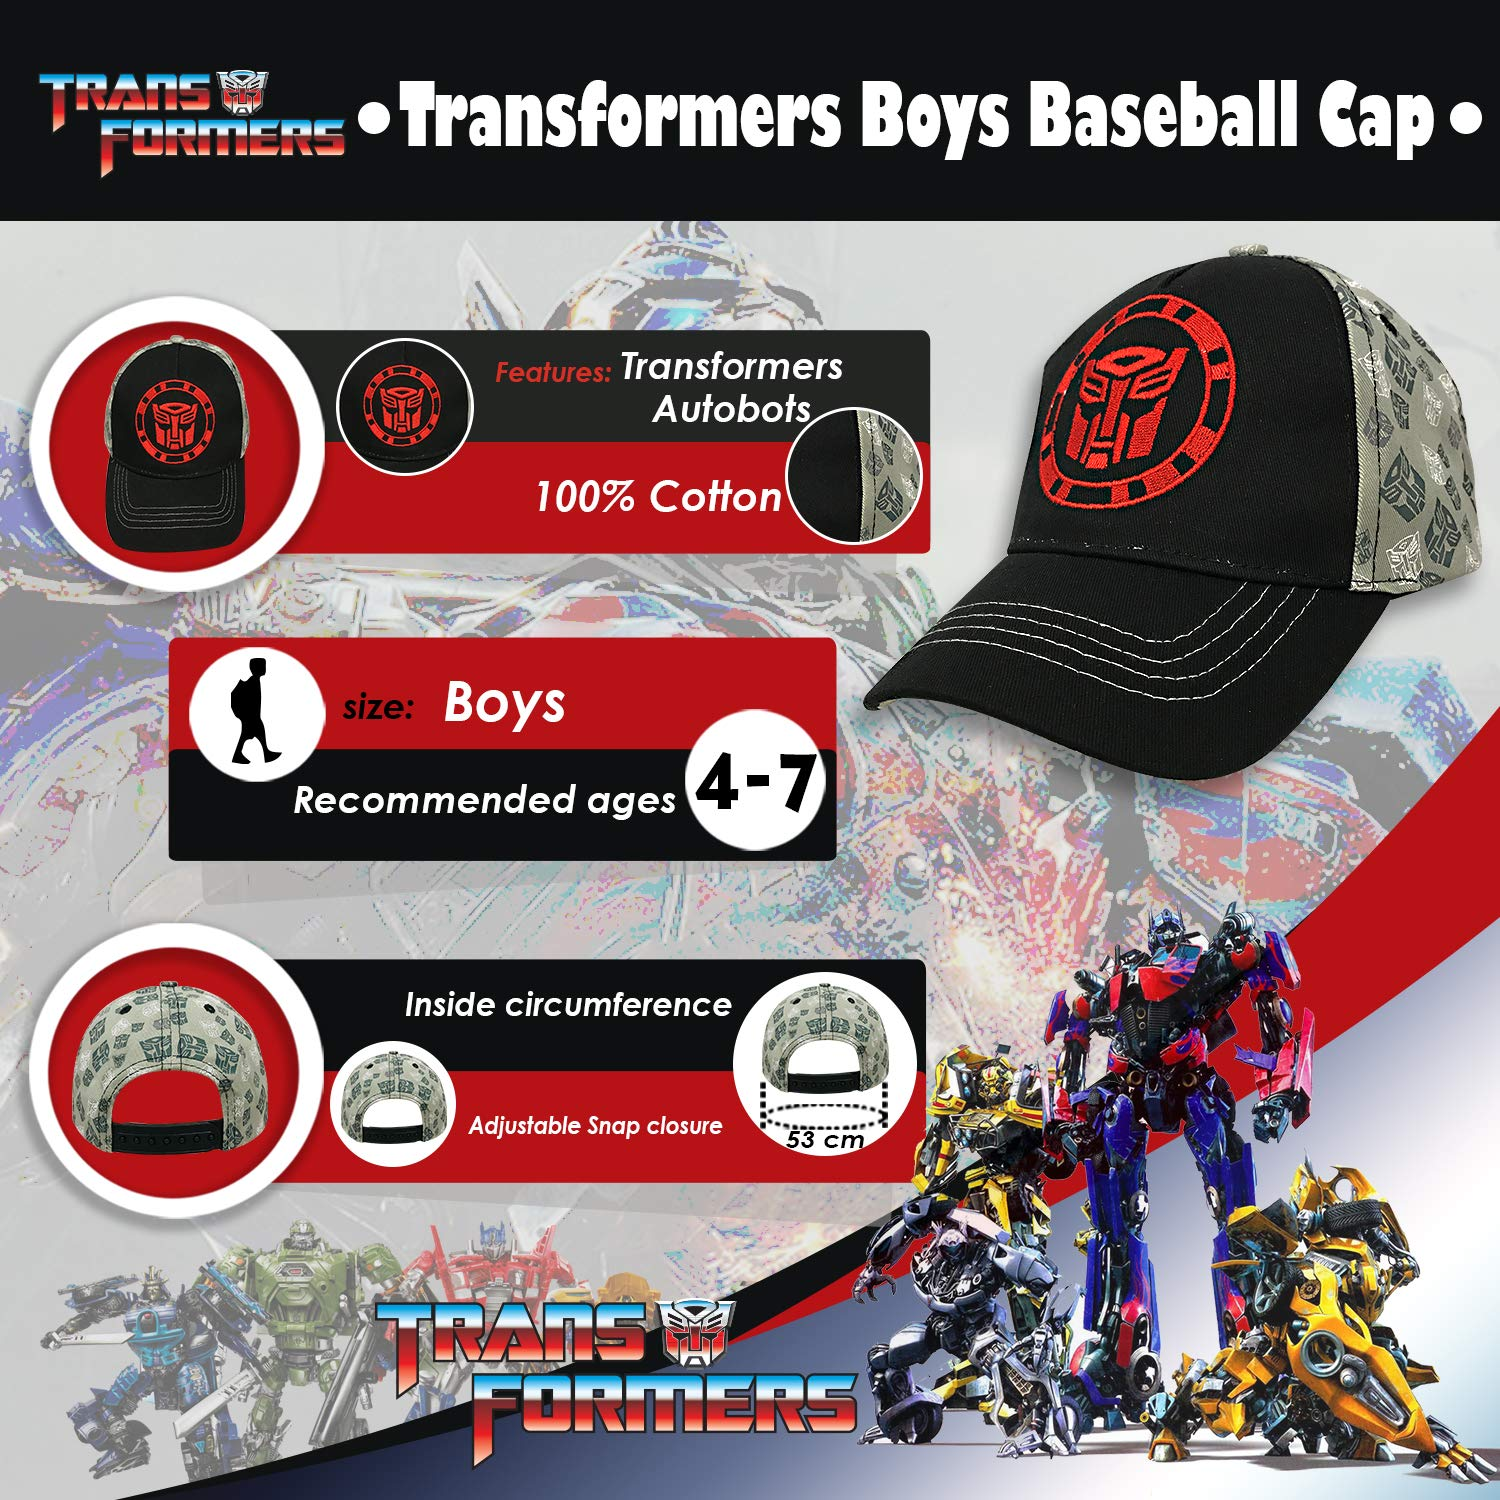 580adfe83d4d0 Amazon.com  Transformers Autobot Logo Black and Grey Baseball Cap - Size  Boys  Clothing